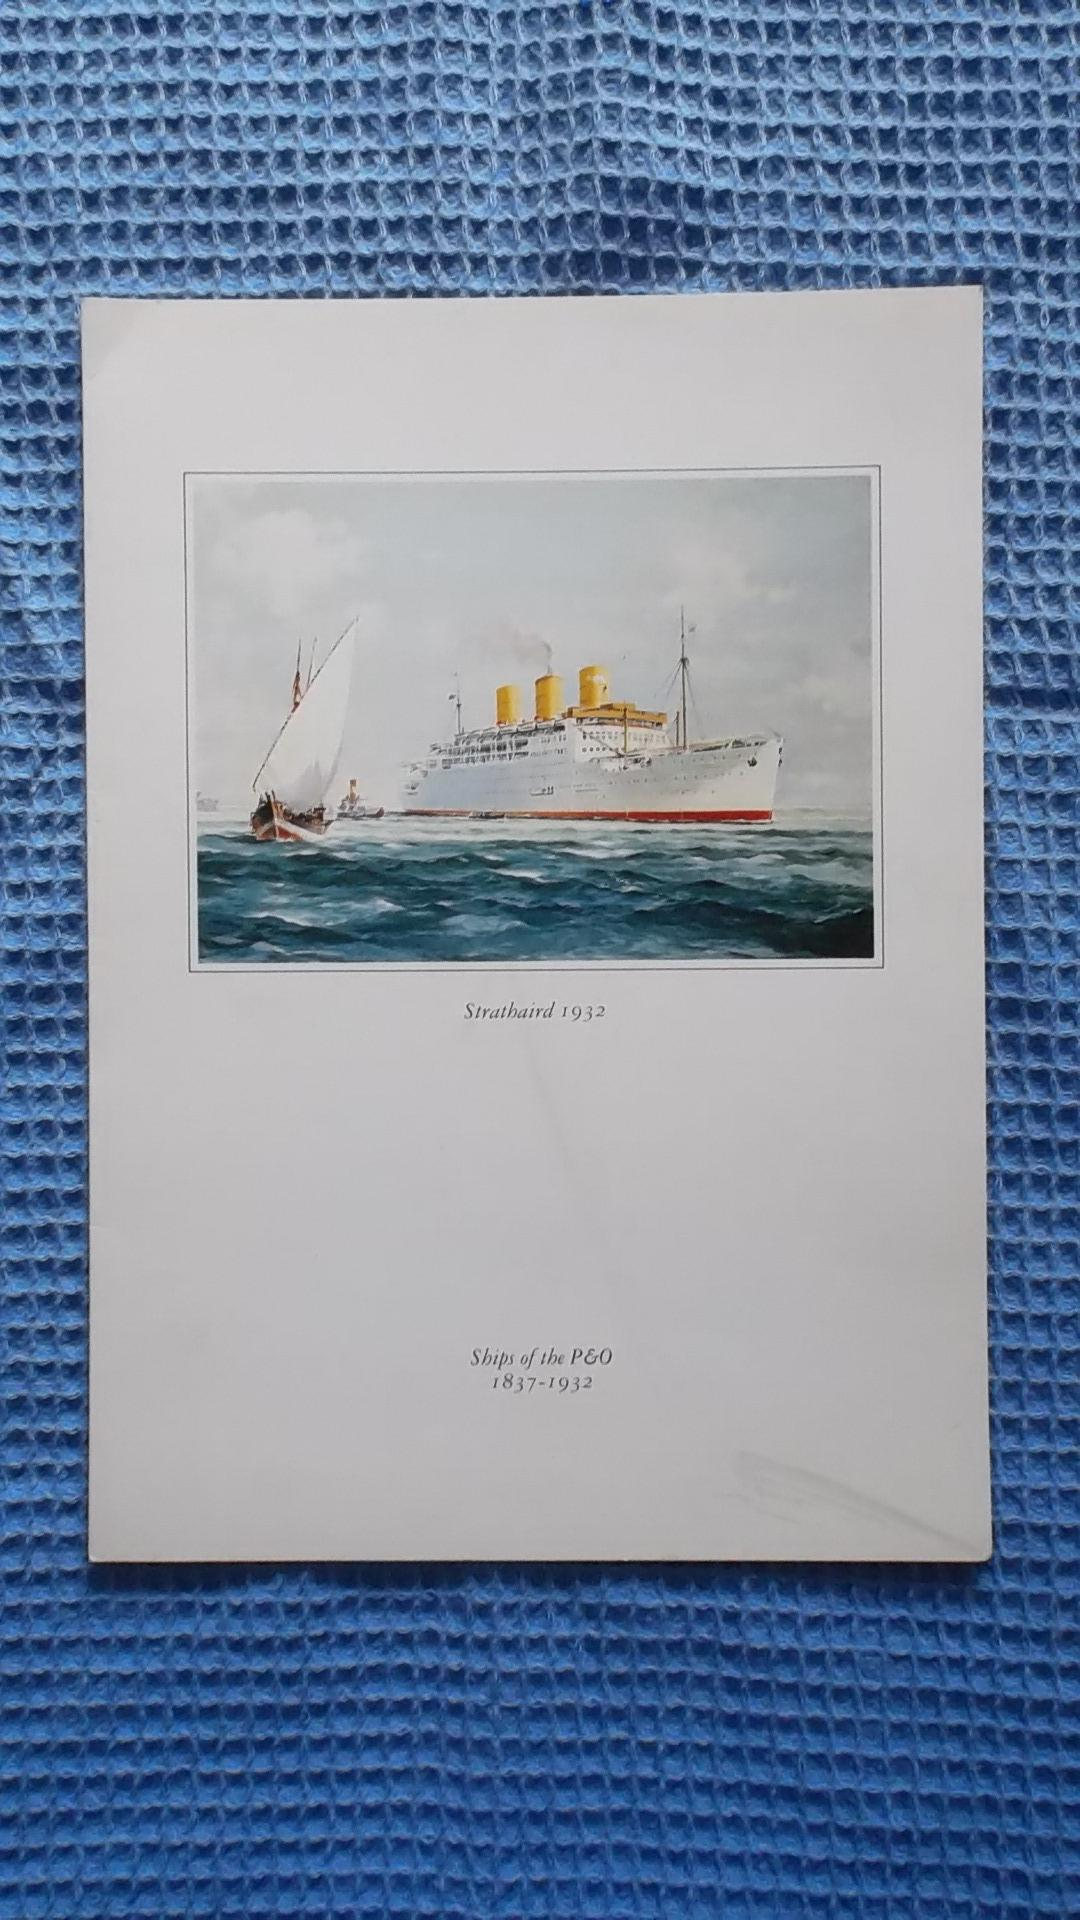 DINNER MENU FROM THE P&O LINE VESSEL THE SS CANBERRA DATED MAY 1989